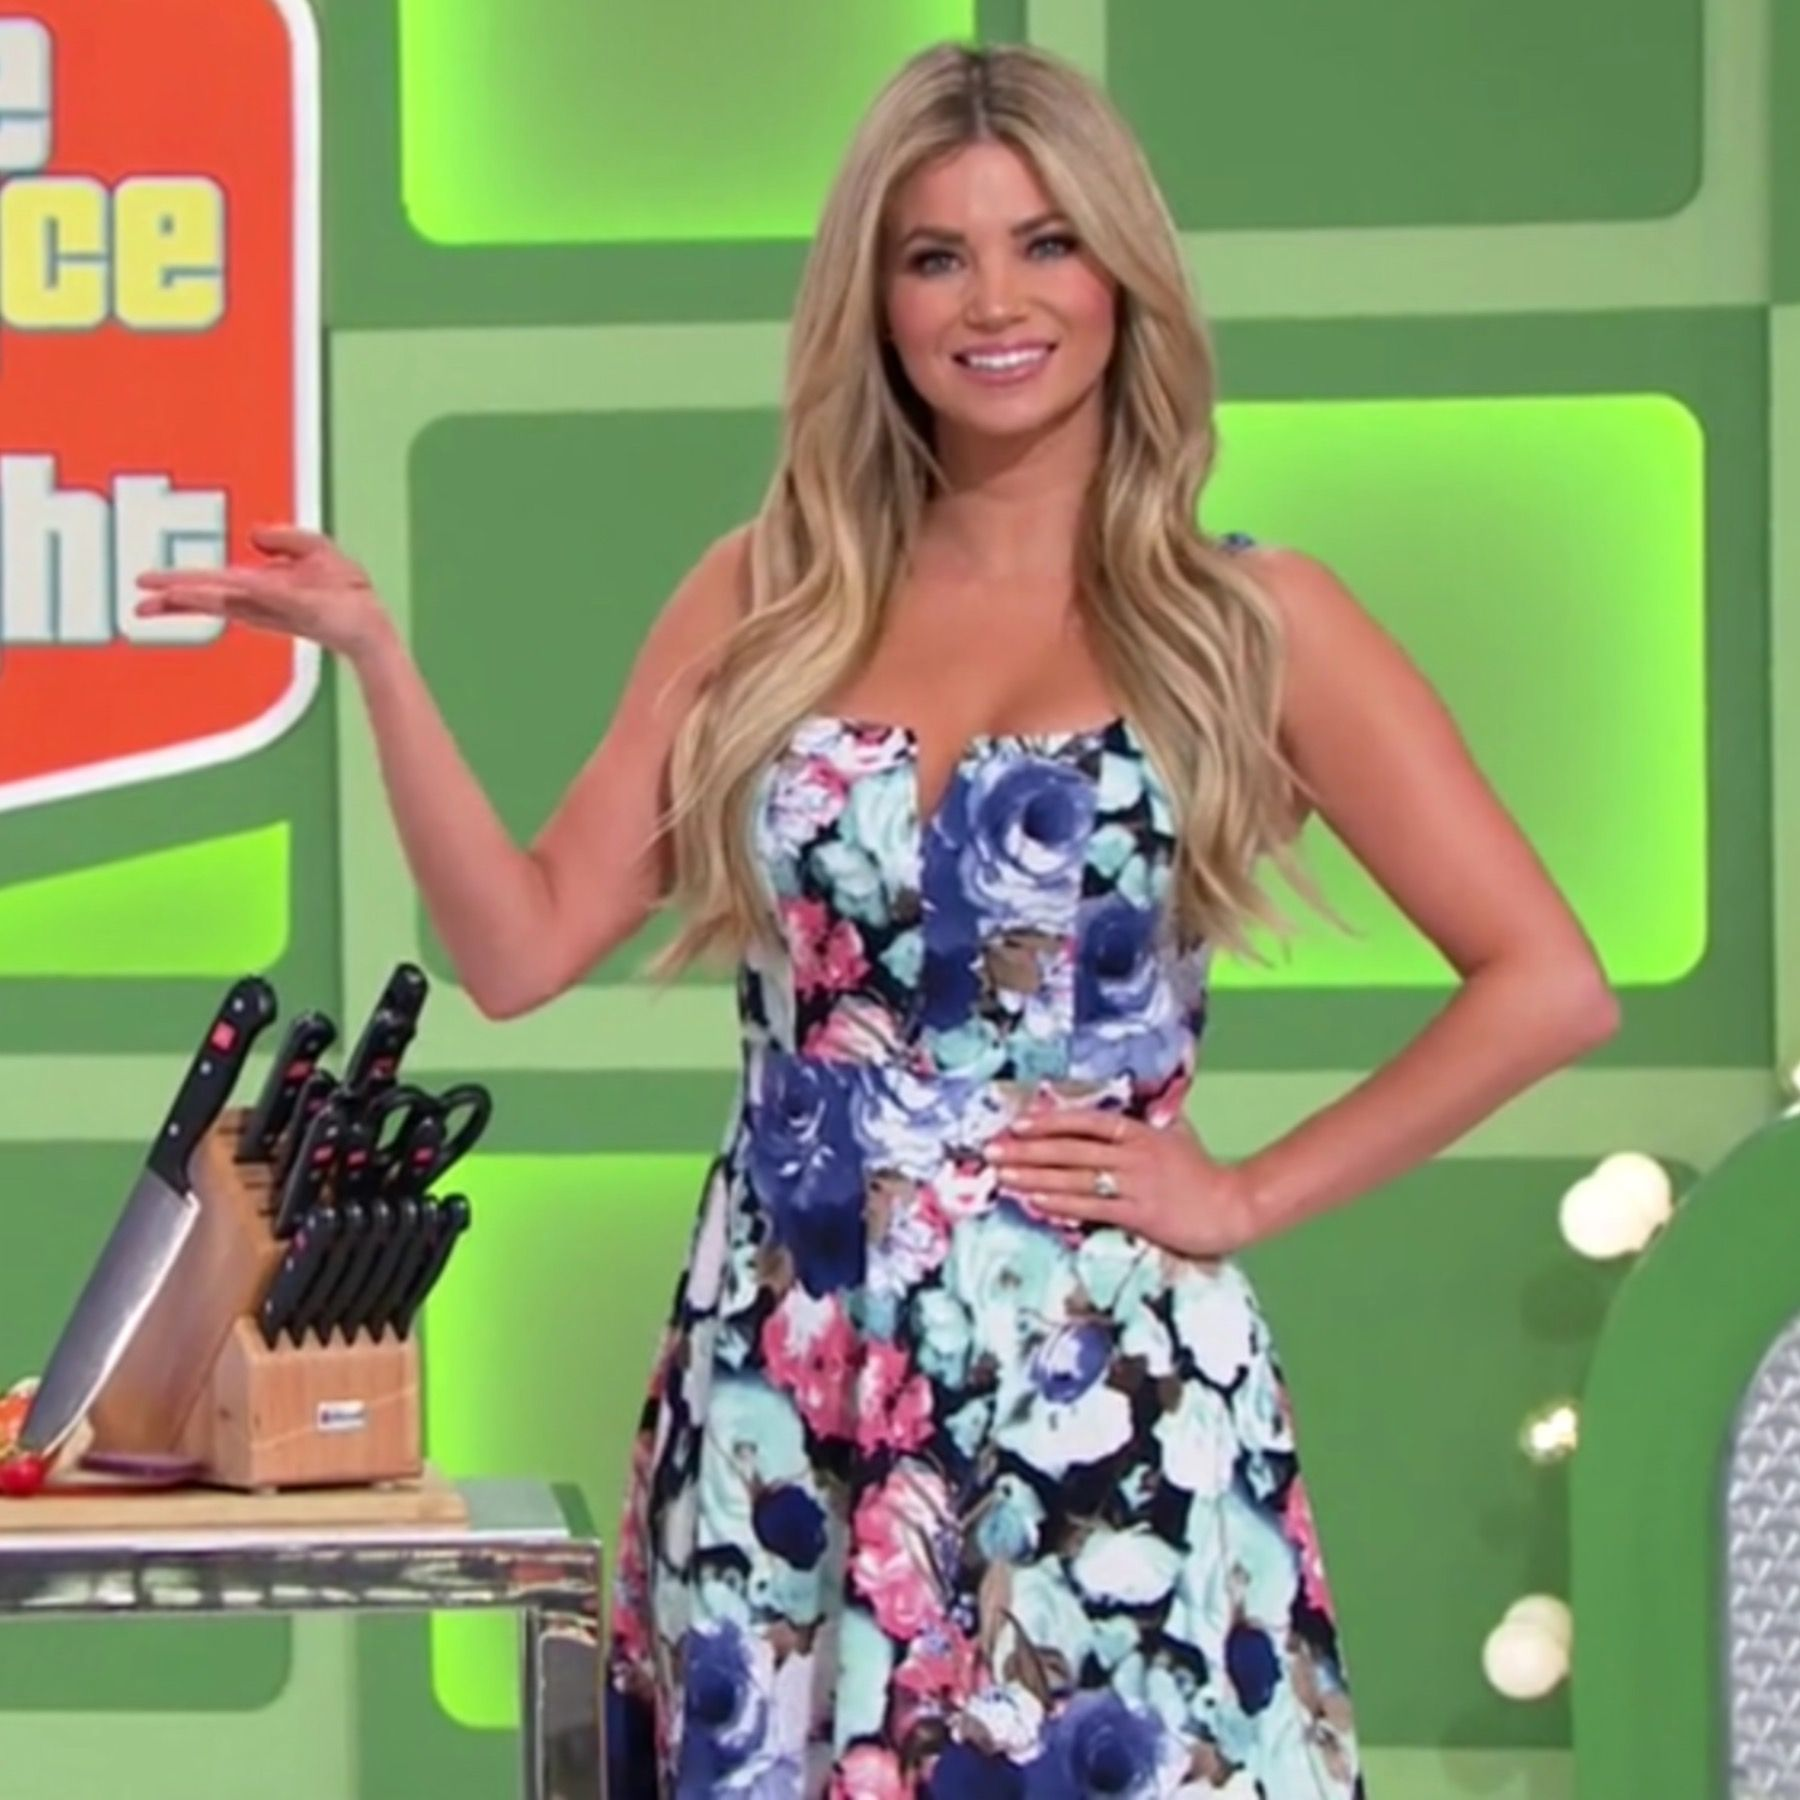 Amber Lancaster From The Price Is Right amber lancaster - the price is right (1/23/2019